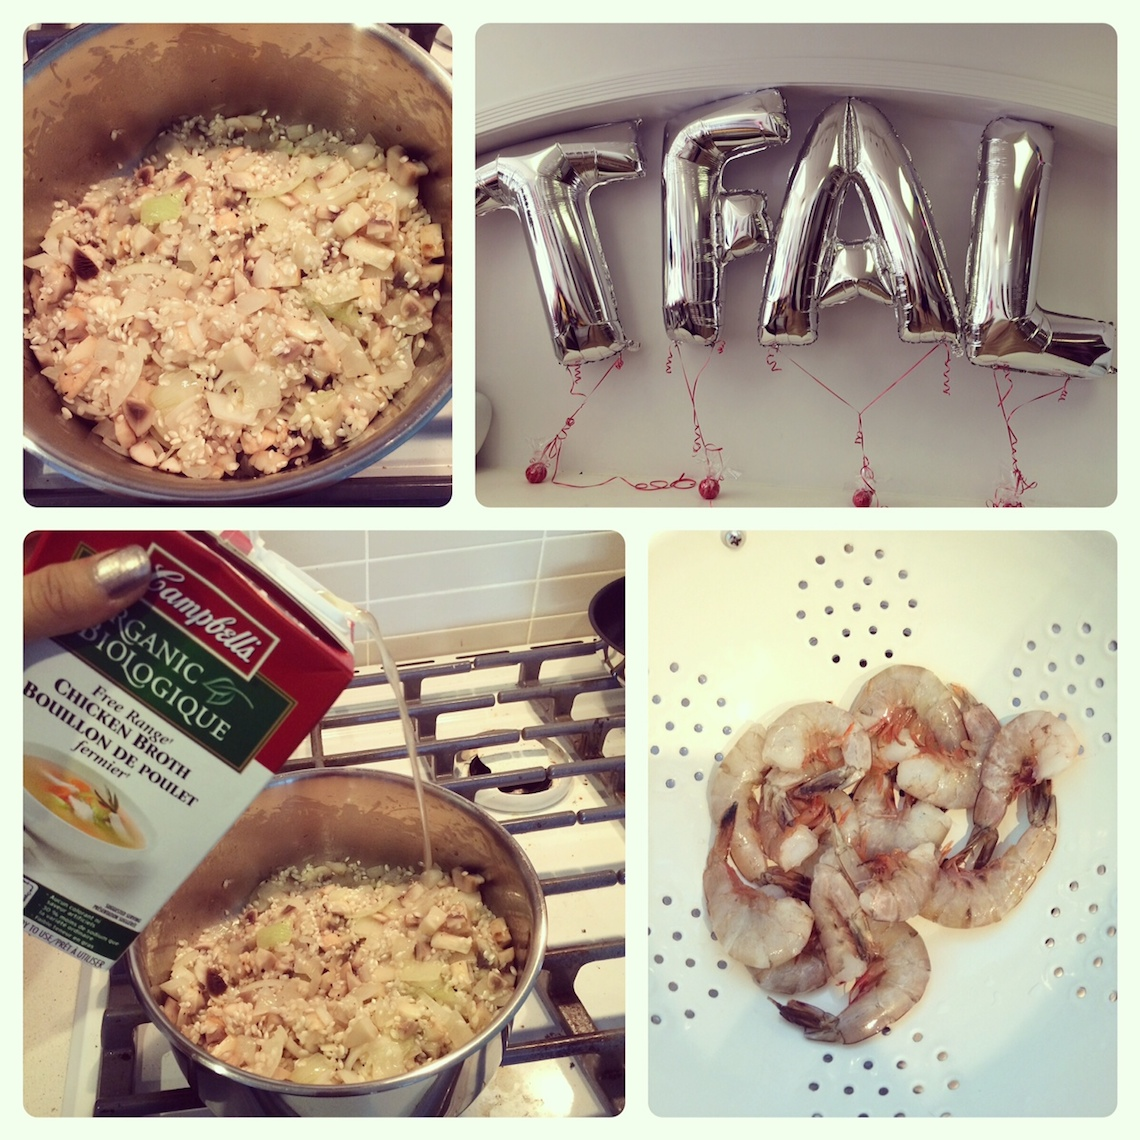 tfal click to cook ingenio collection dinner party collage 2